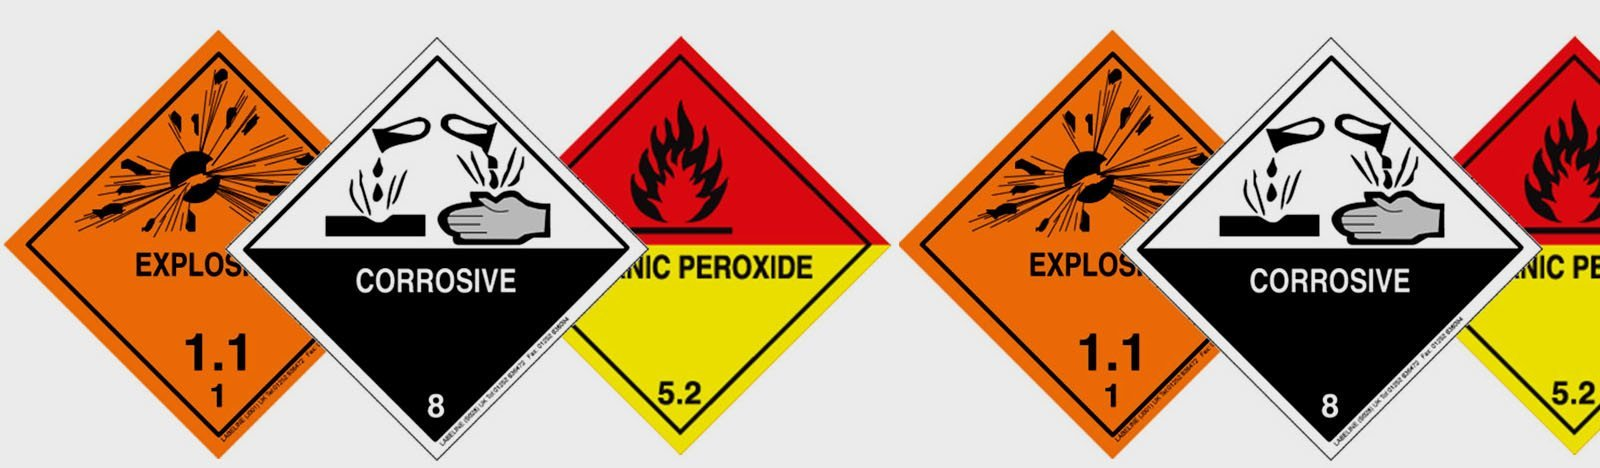 Hazard Labels